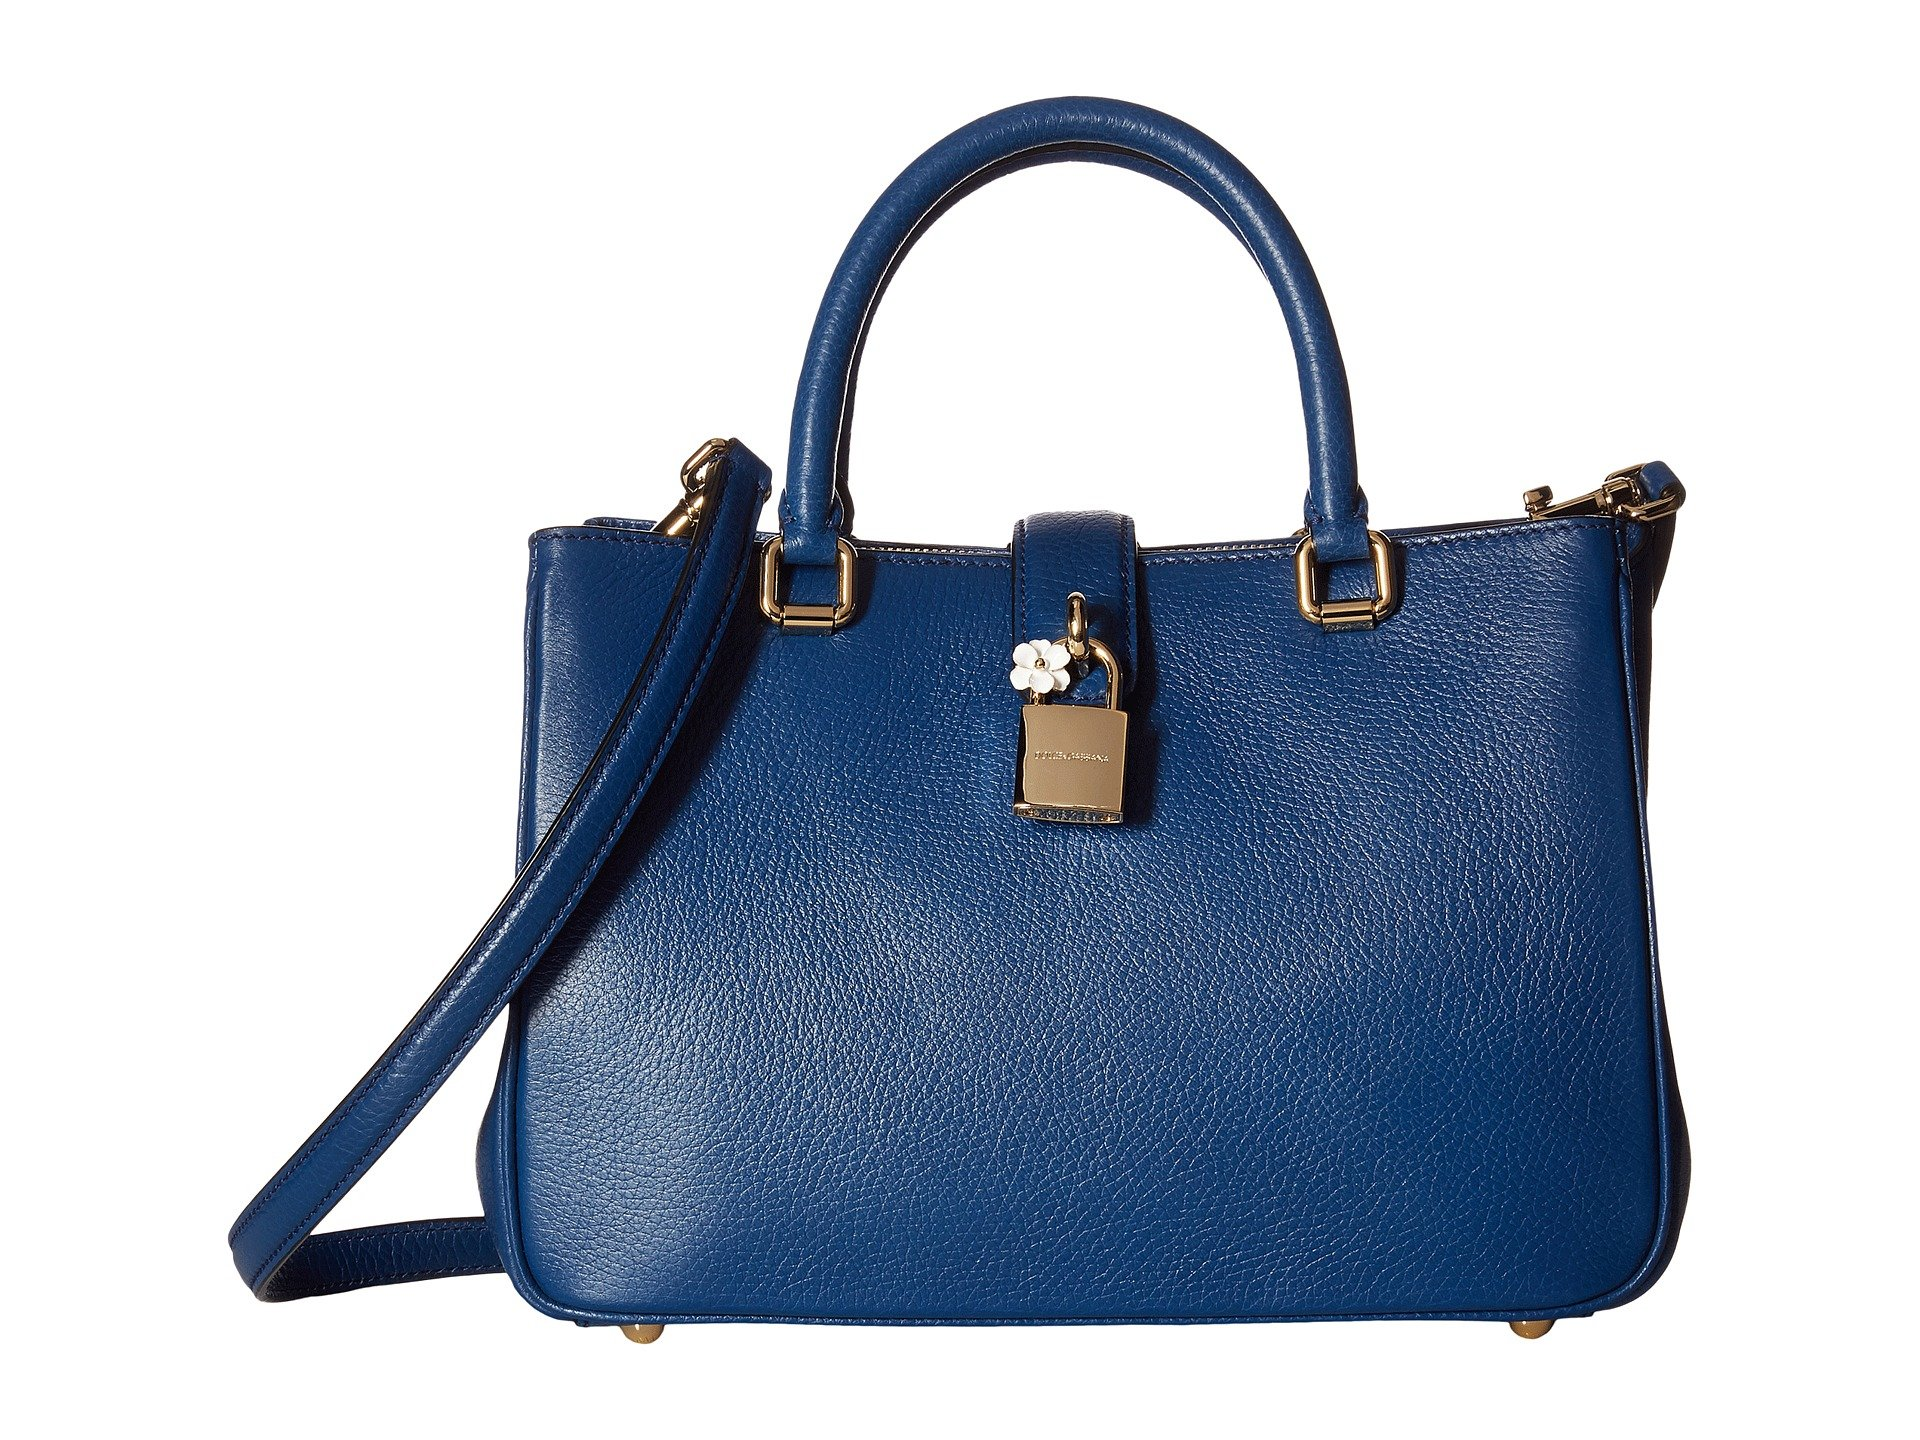 Bolso tipo Satchel para Mujer Dolce and Gabbana Small Leather Dolce Shopper  + Dolce & Gabbana en VeoyCompro.net